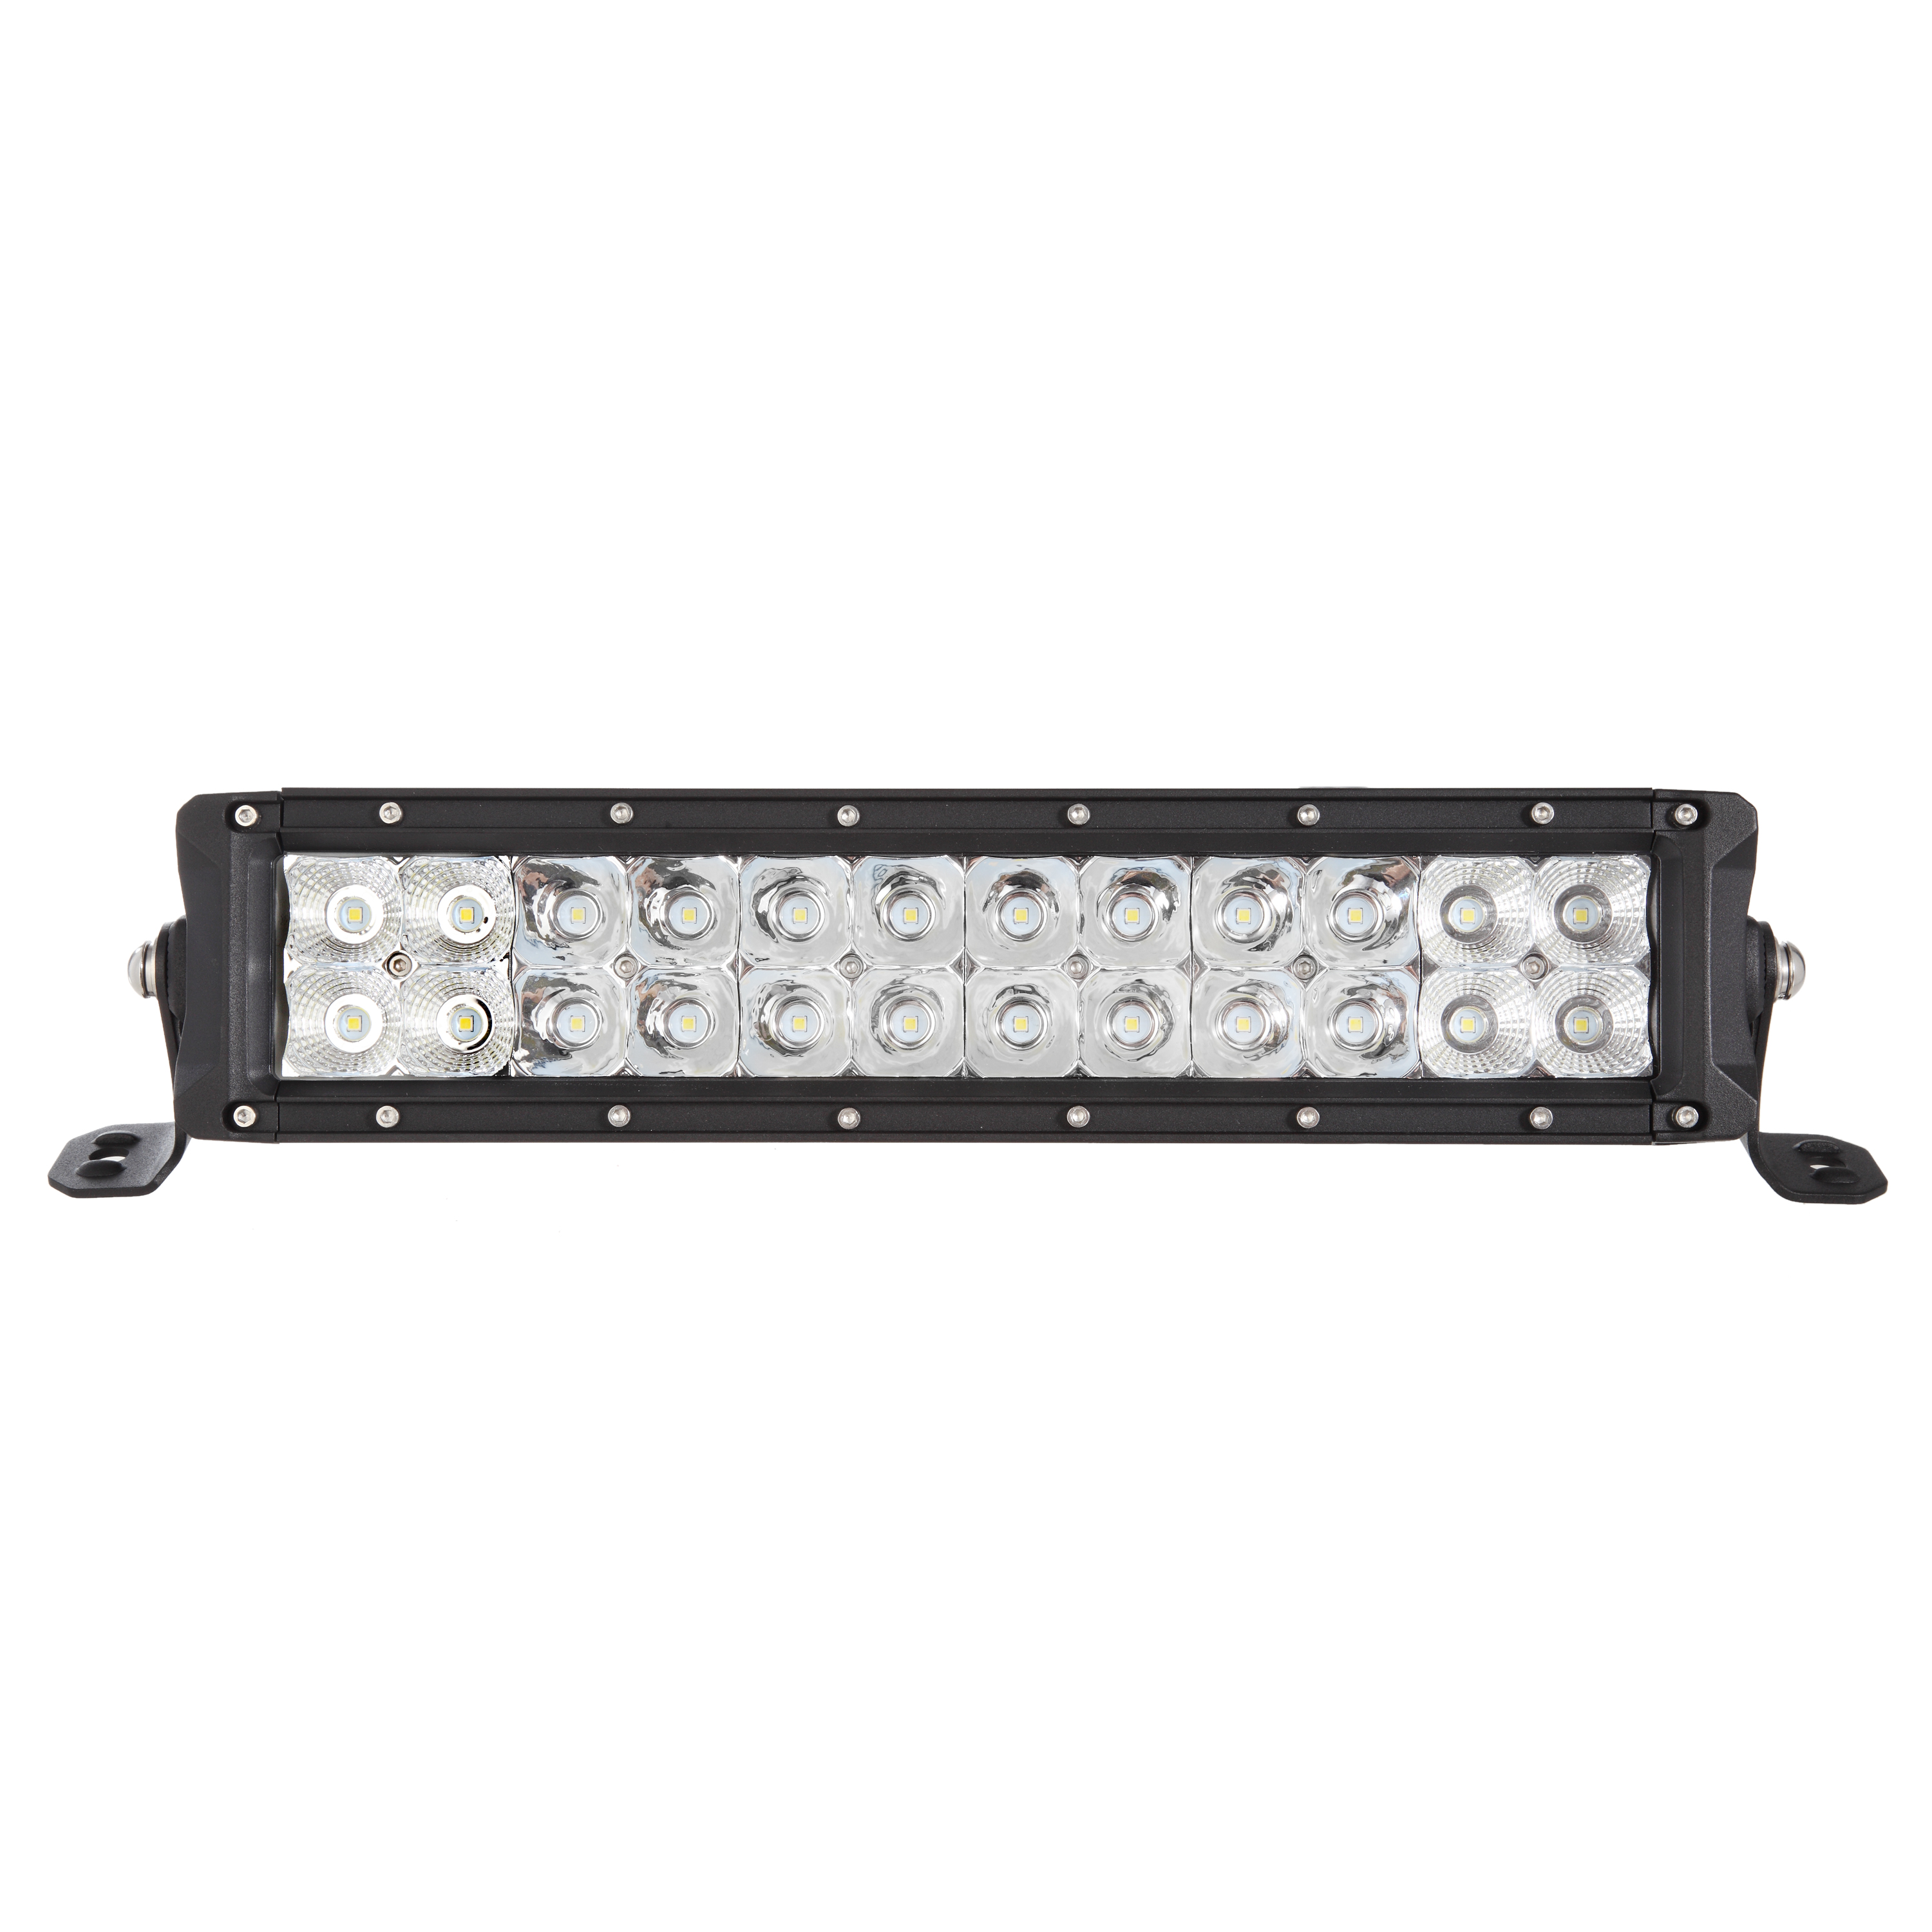 Auto Drive Apoo513g 15 Inch Led Combo Bar Light With Brackets